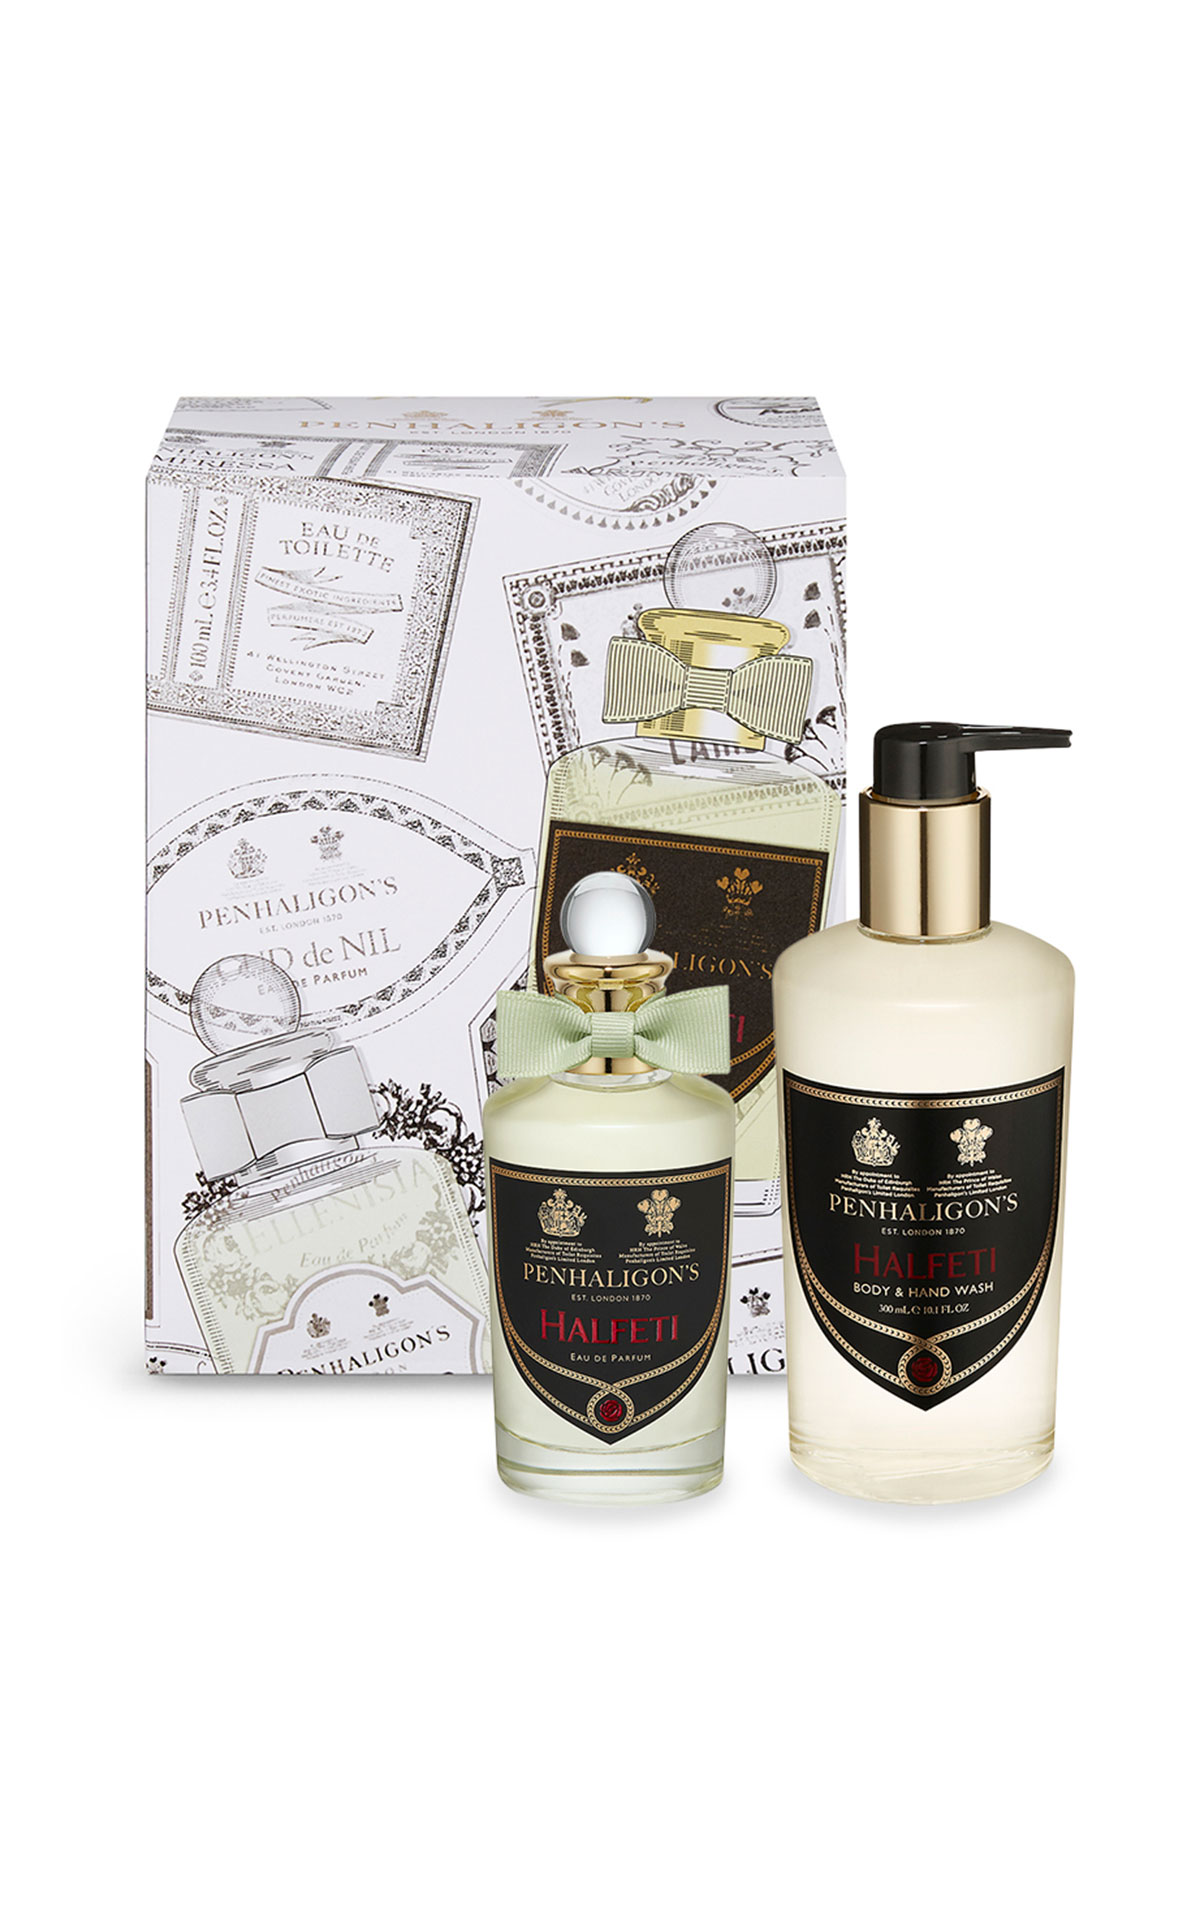 Penhaligon's Halfeti 100ml and Halfeti body and hand wash from Bicester Village